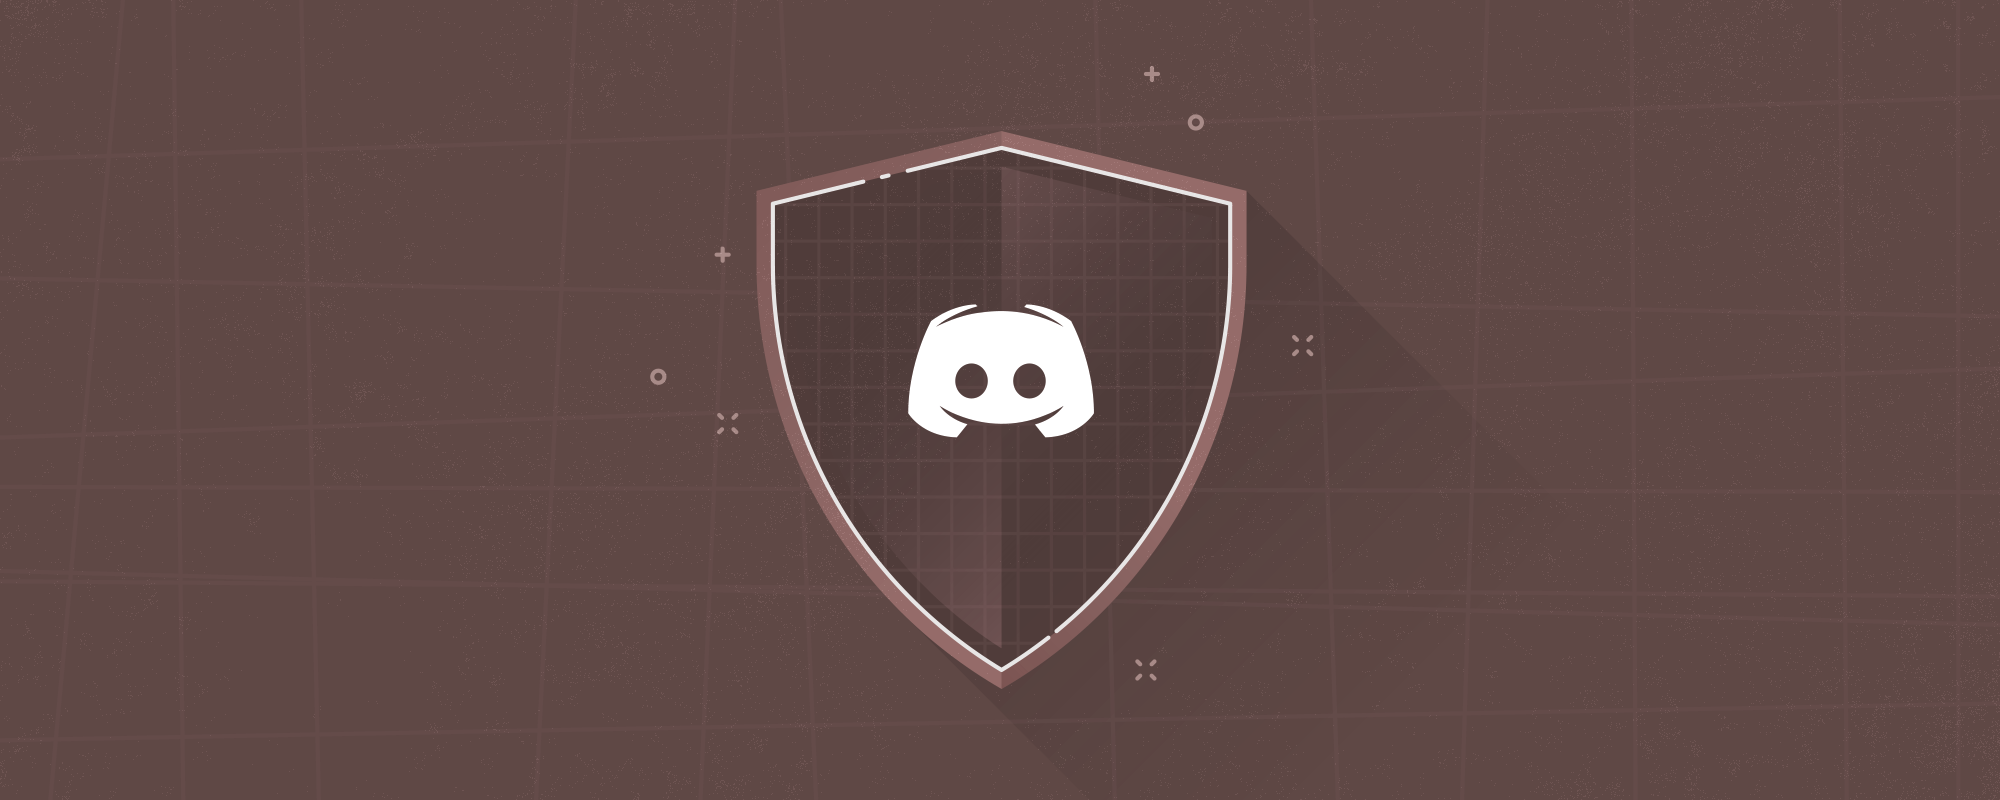 Discord Transparency Report: Jan 1 — April 1 - Discord Blog